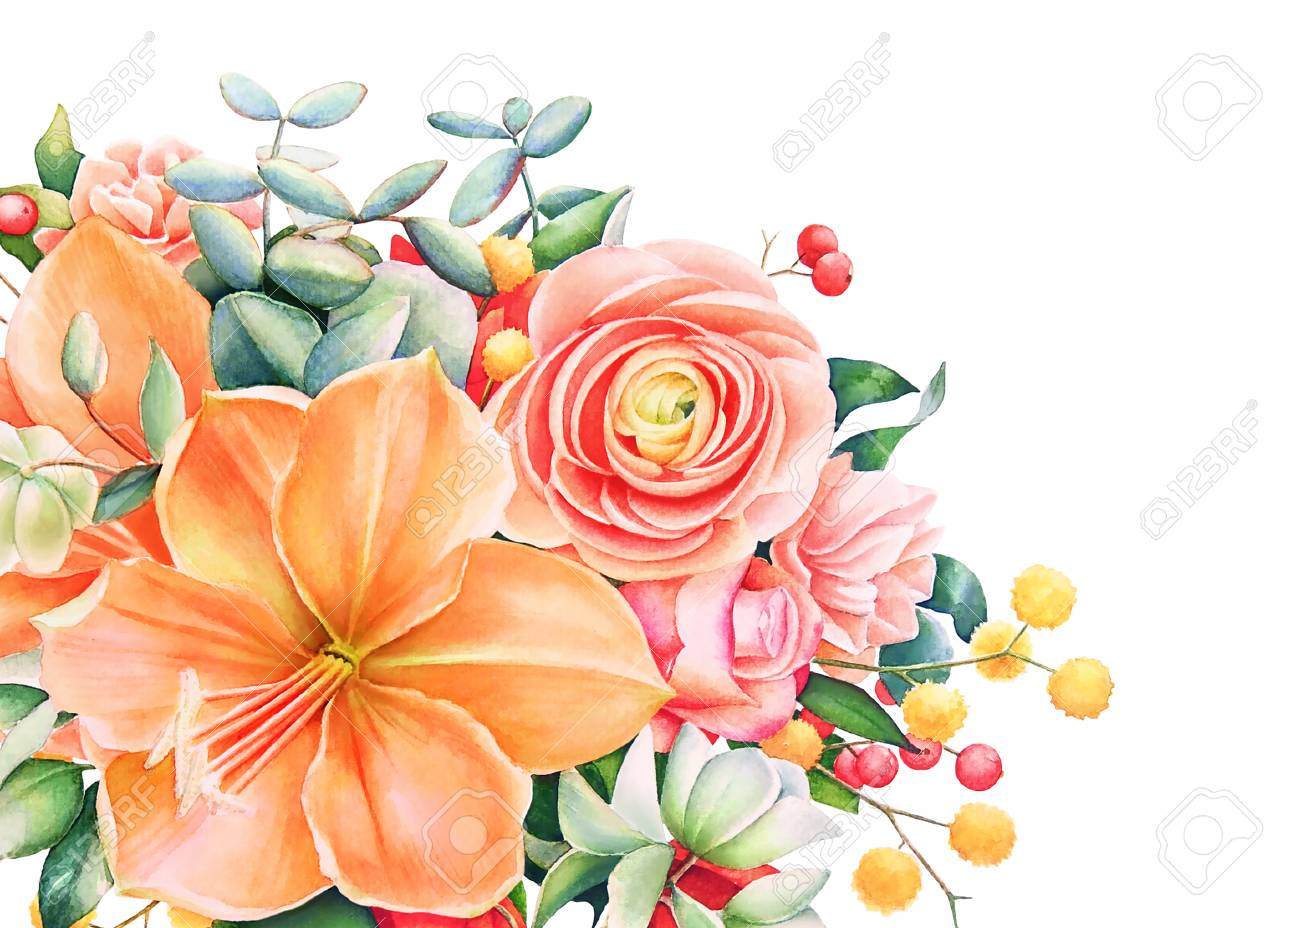 Beautiful Floral Design With Watercolor And Hand Drawn Bouquet